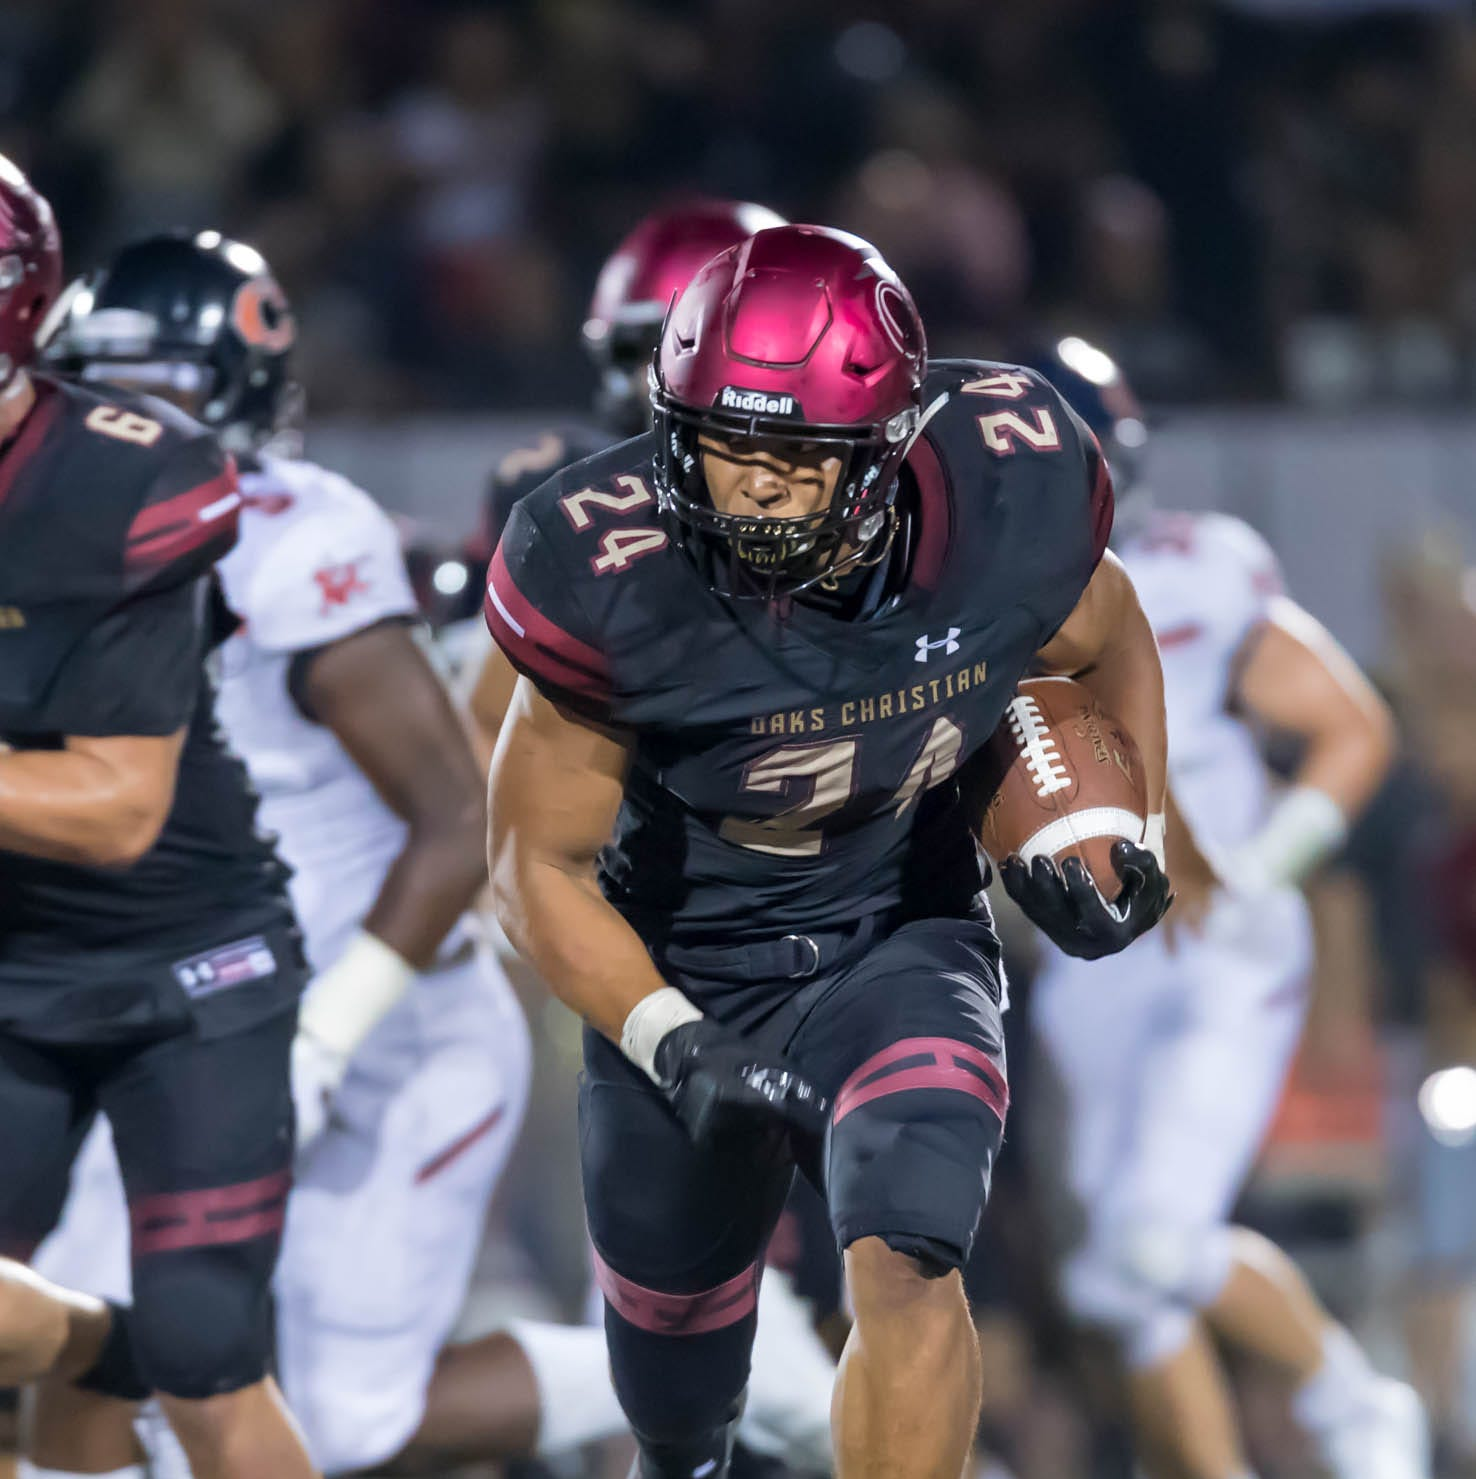 Oaks Christian's Zach Charbonnet is off an running against Chaminade in Thursday's season opener. Charbonnet rushed for 186 yards and three touchdowns in the Lions' 31-13 win.